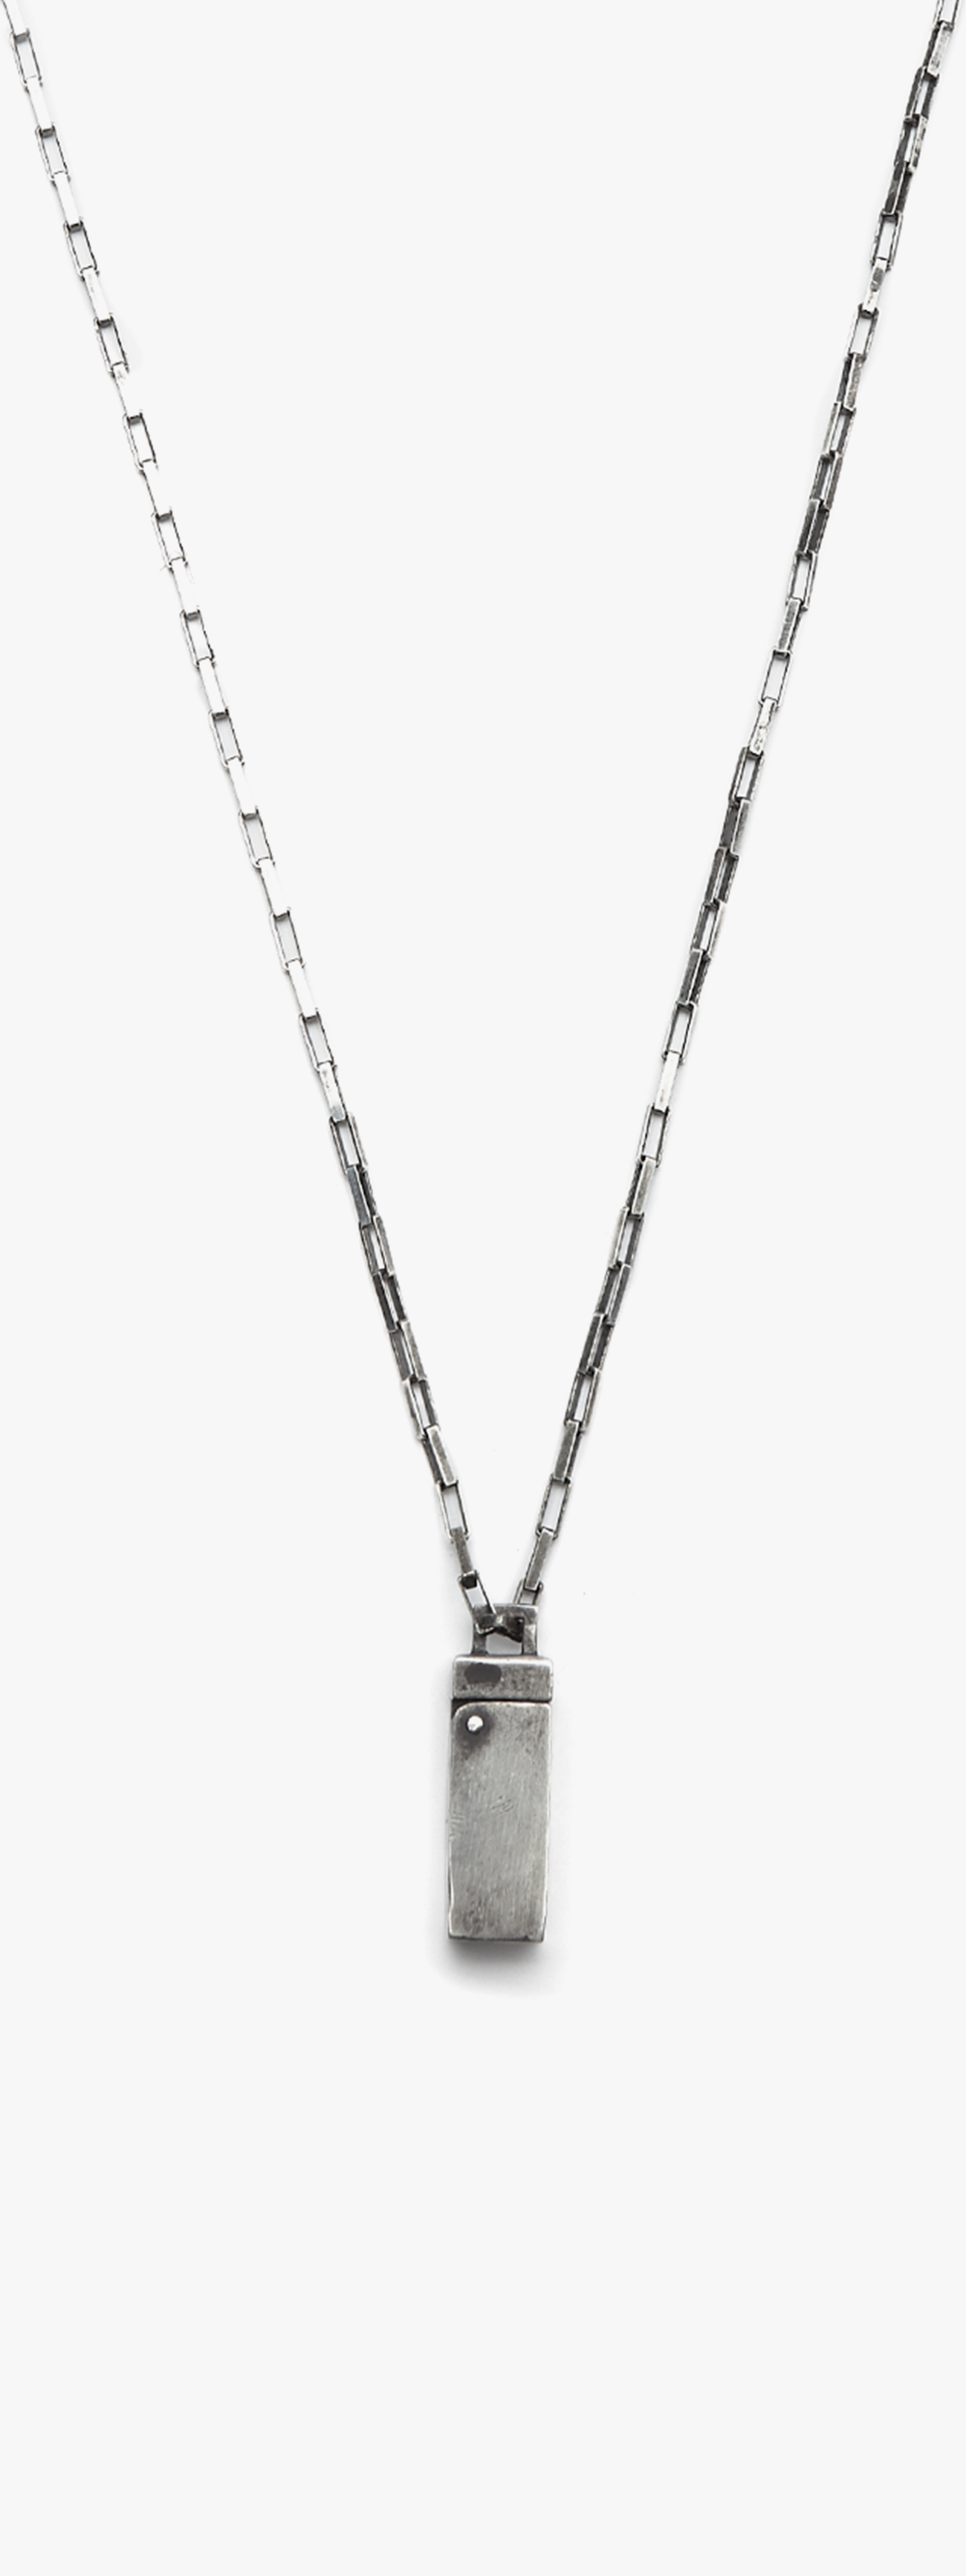 Image of Vial Necklace